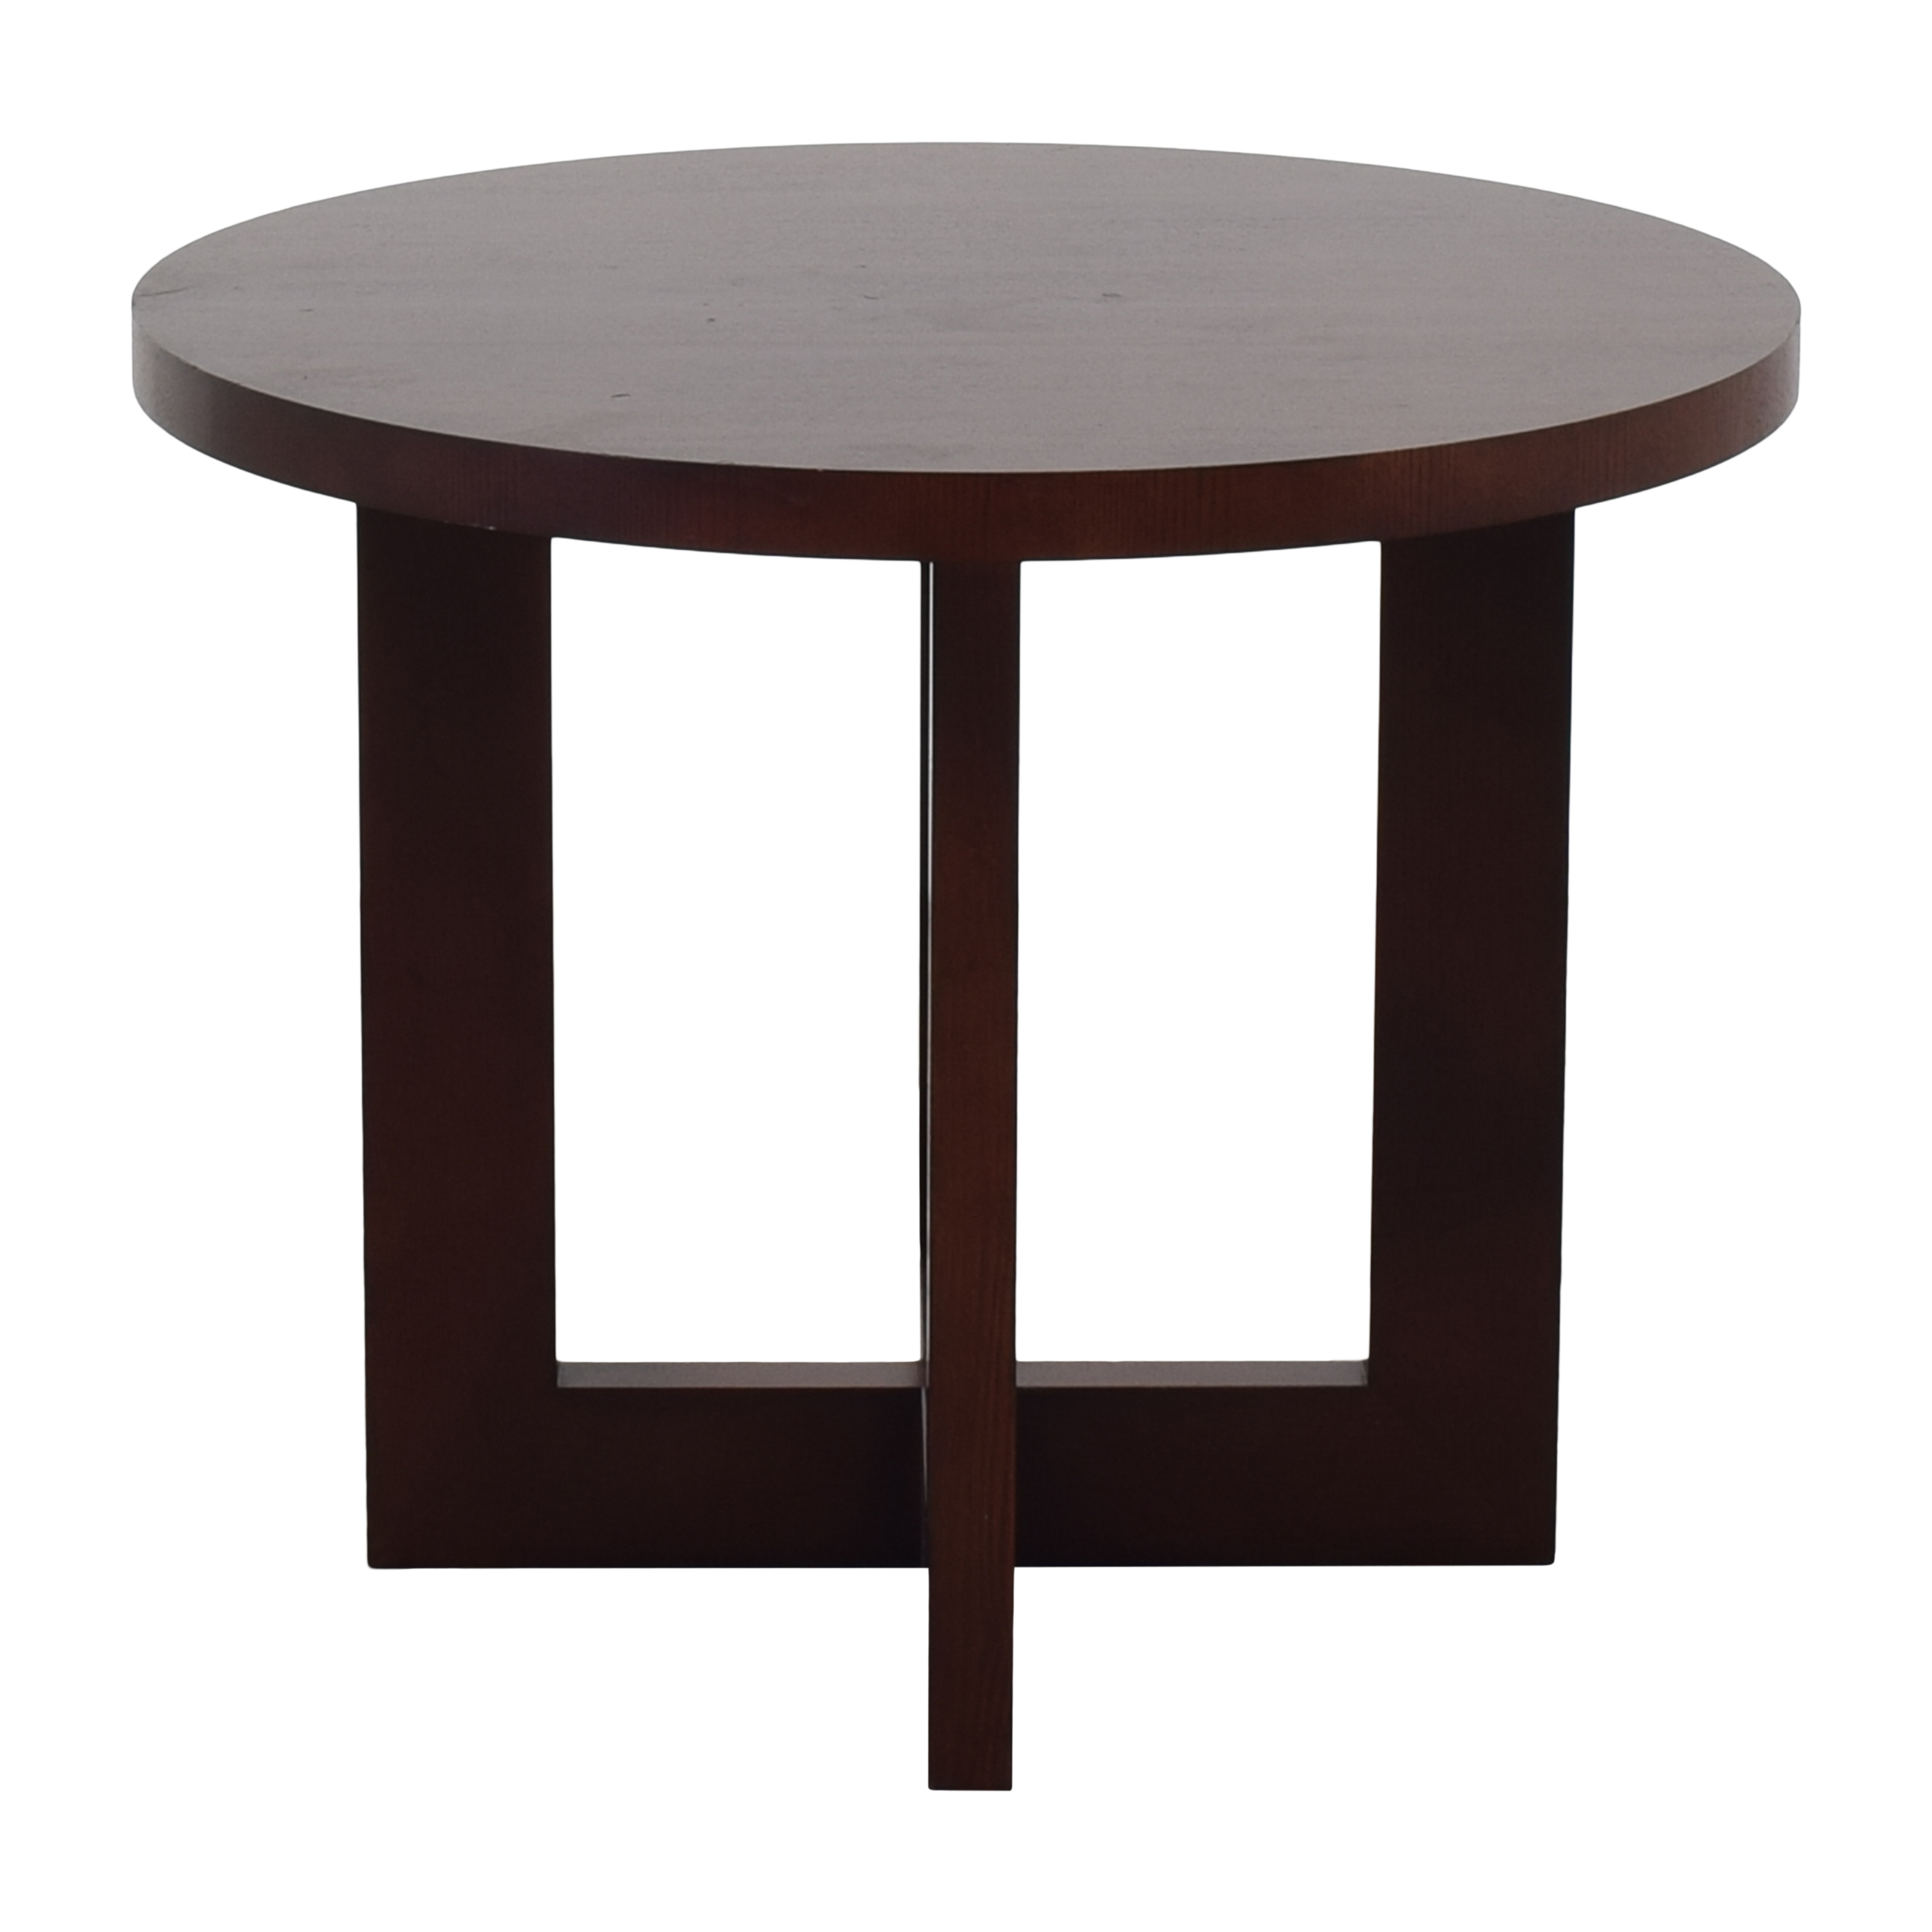 Ethan Allen Round End Table / End Tables